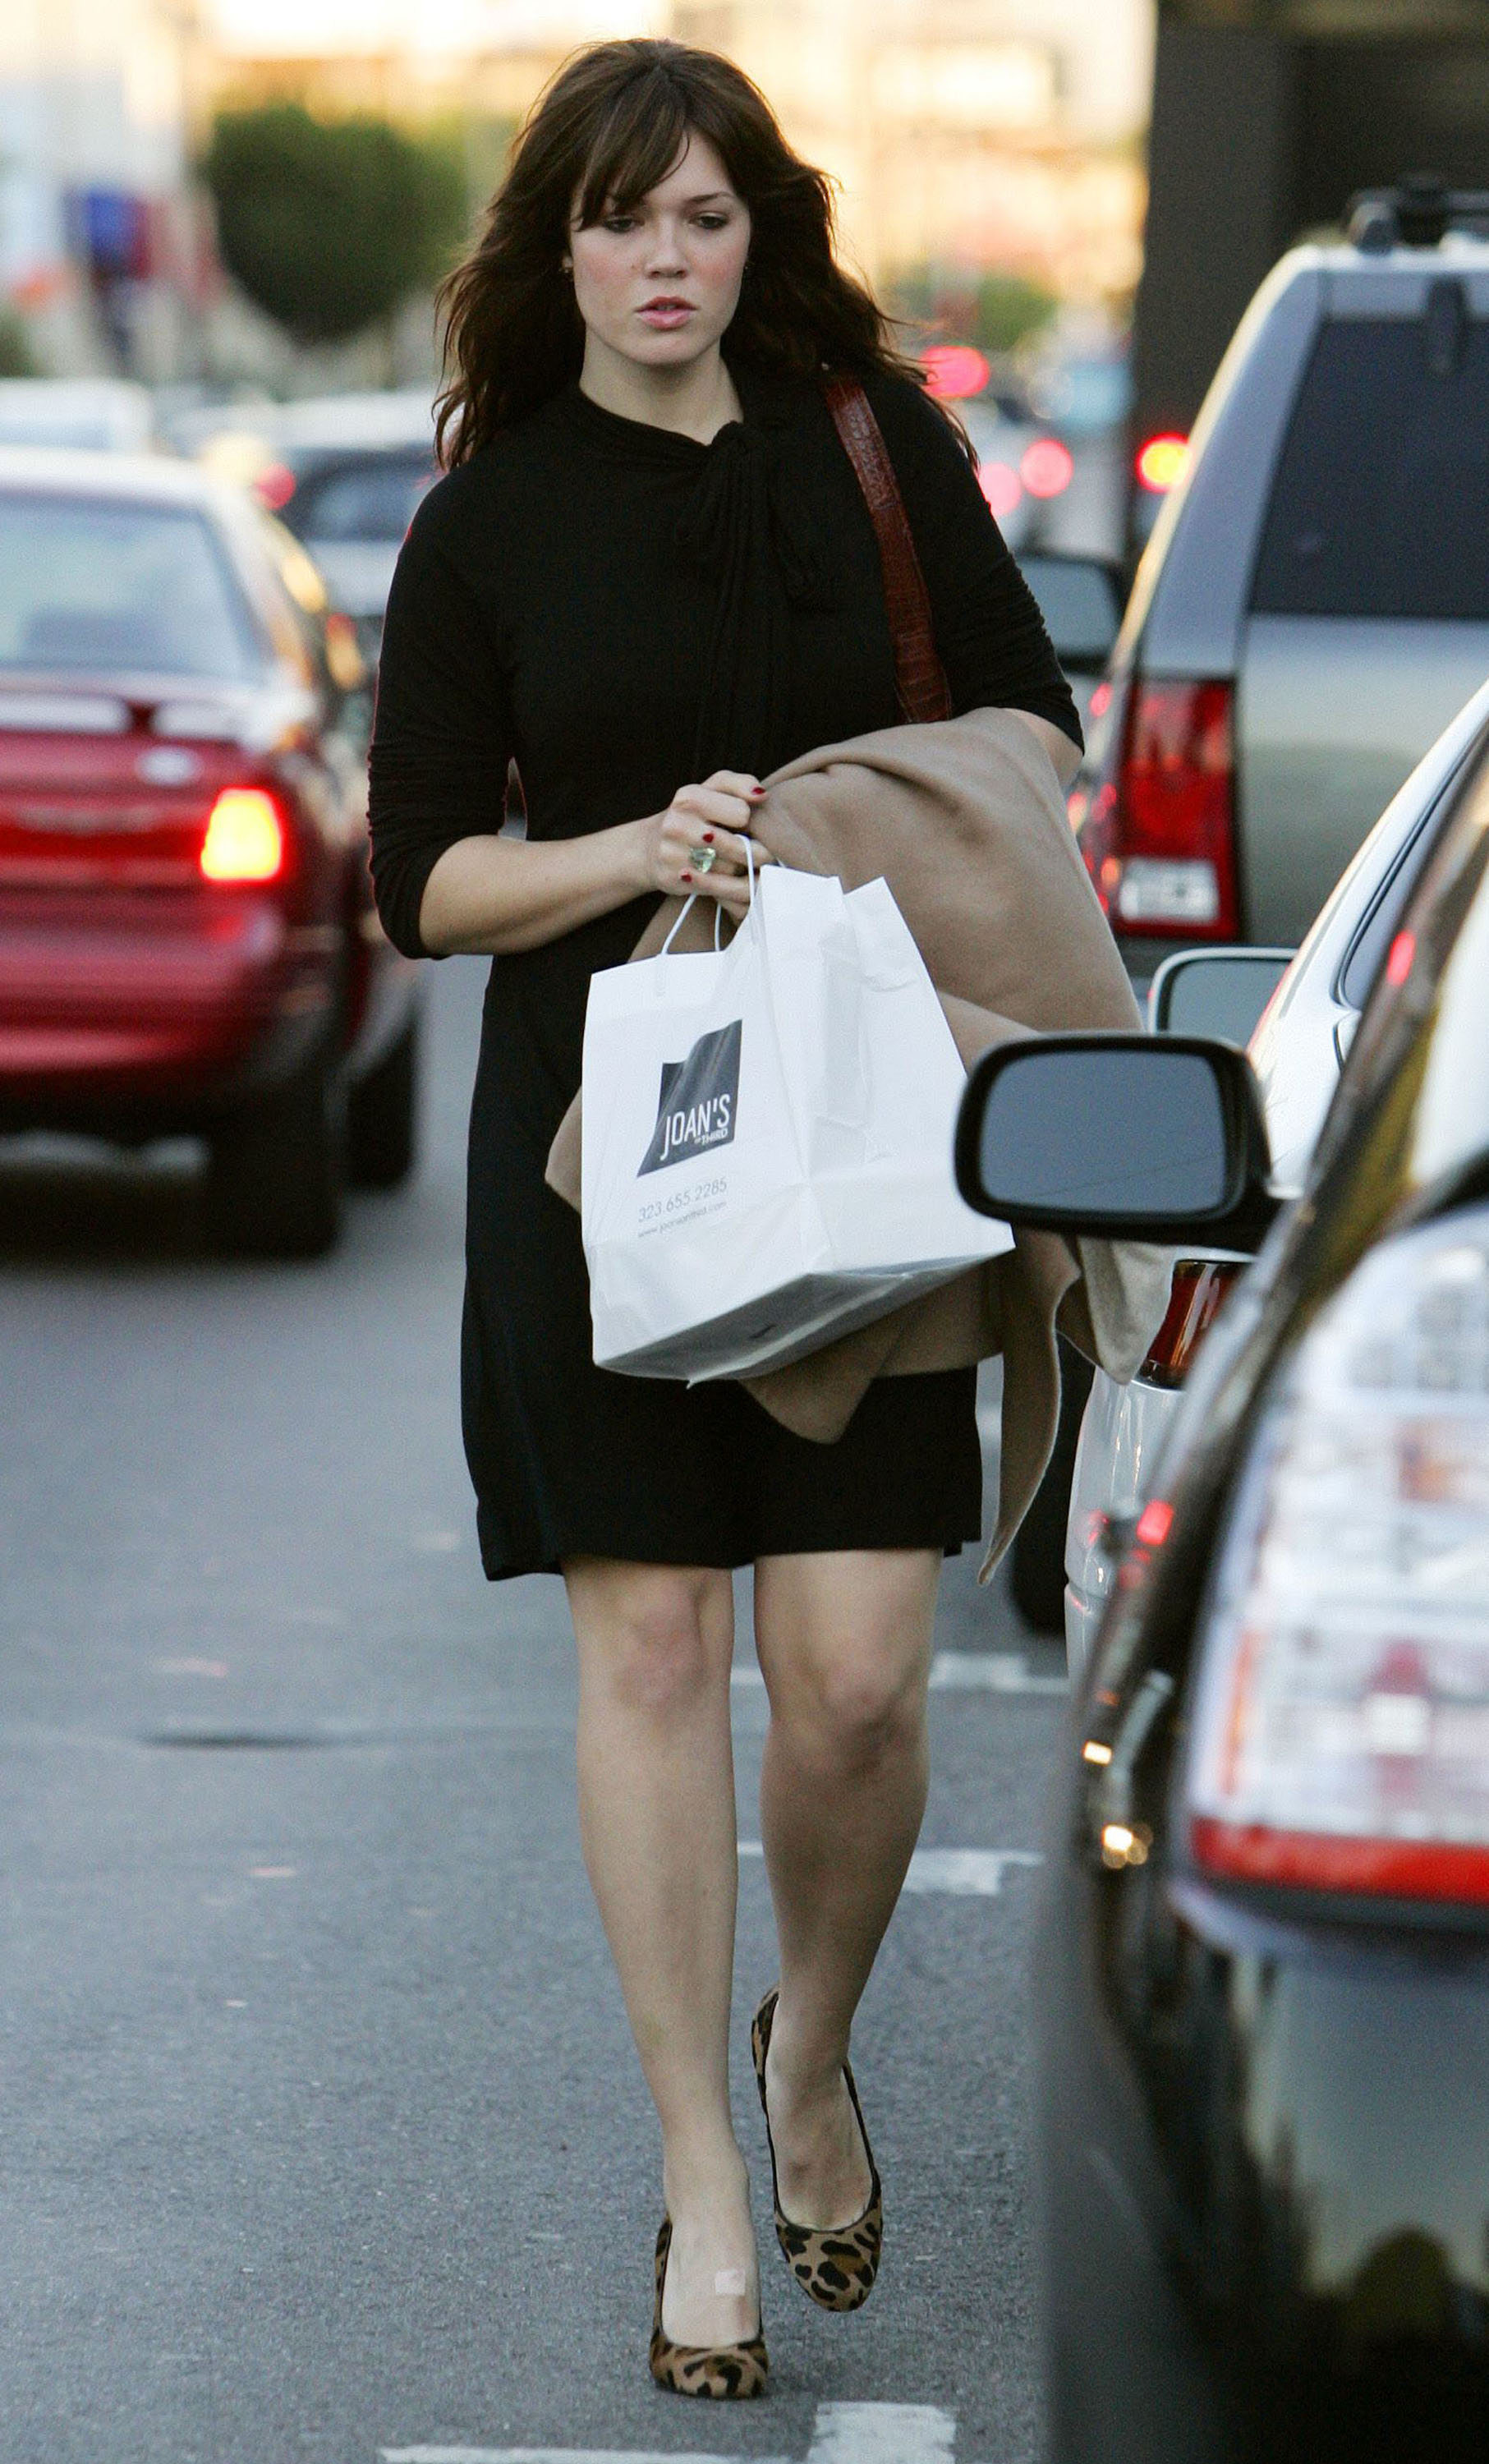 67272_celeb-city.eu_Mandy_Moore_out_and_about_in_West_Hollywood_10.12.2007_09_122_833lo.jpg